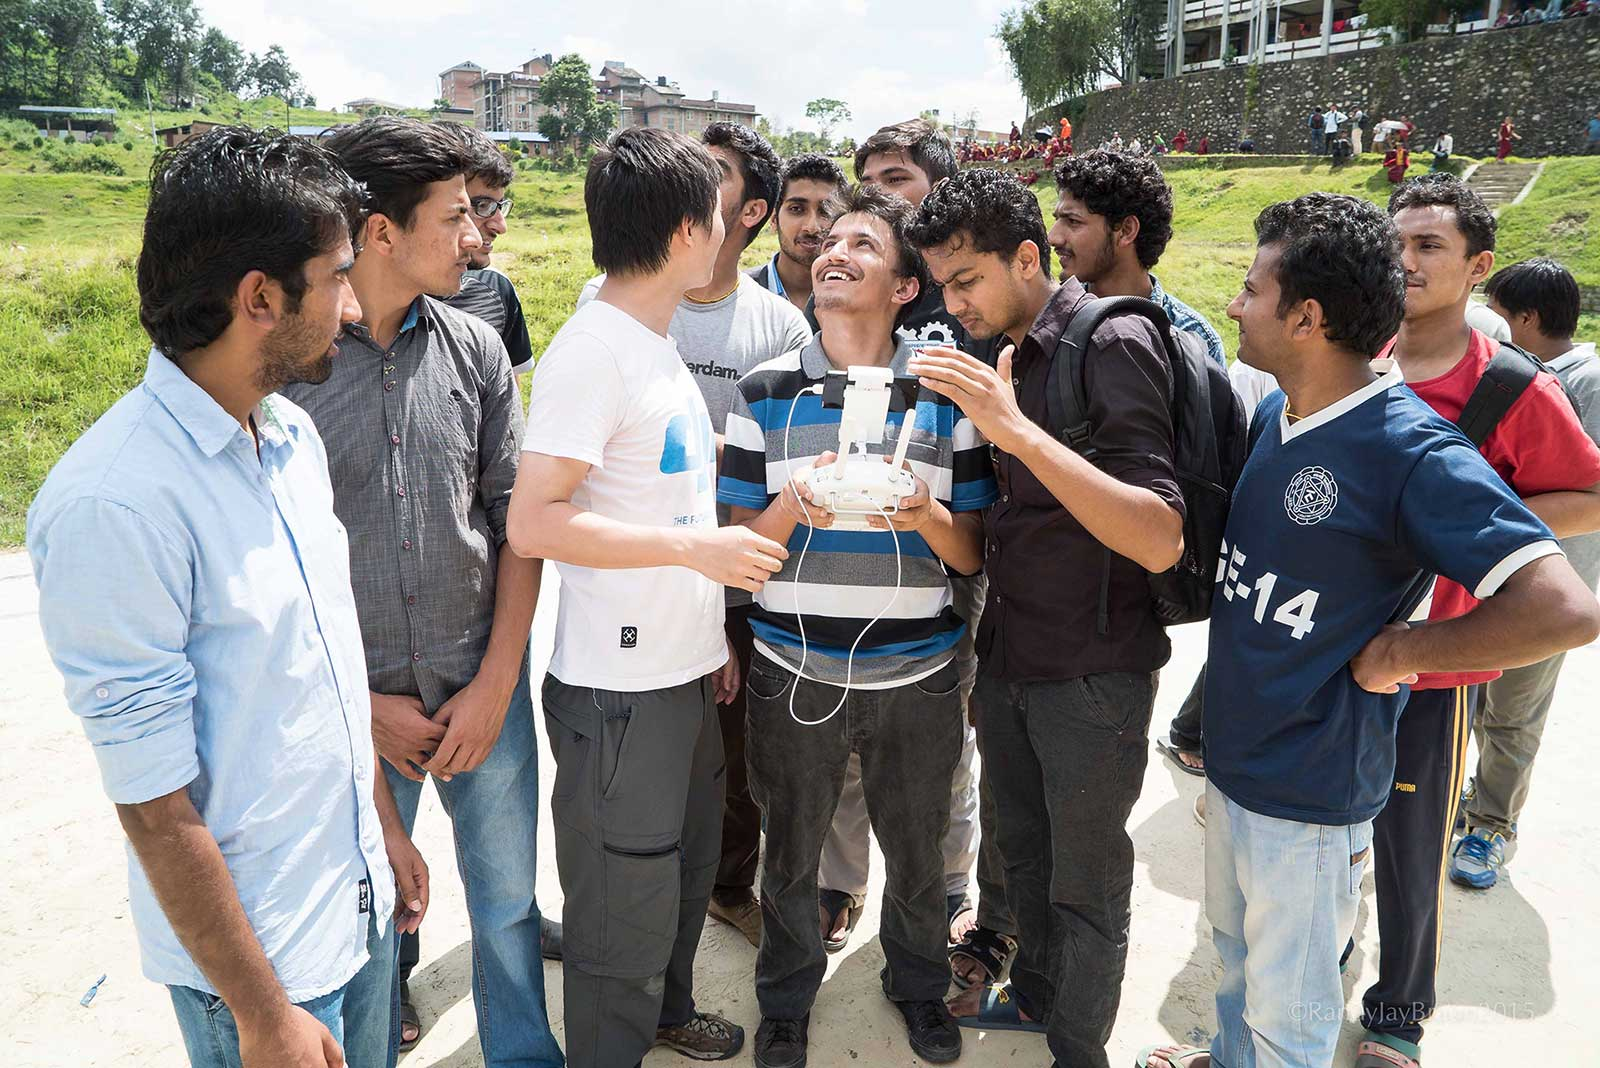 Students from Kathmandu University working with Pix4Dcapture